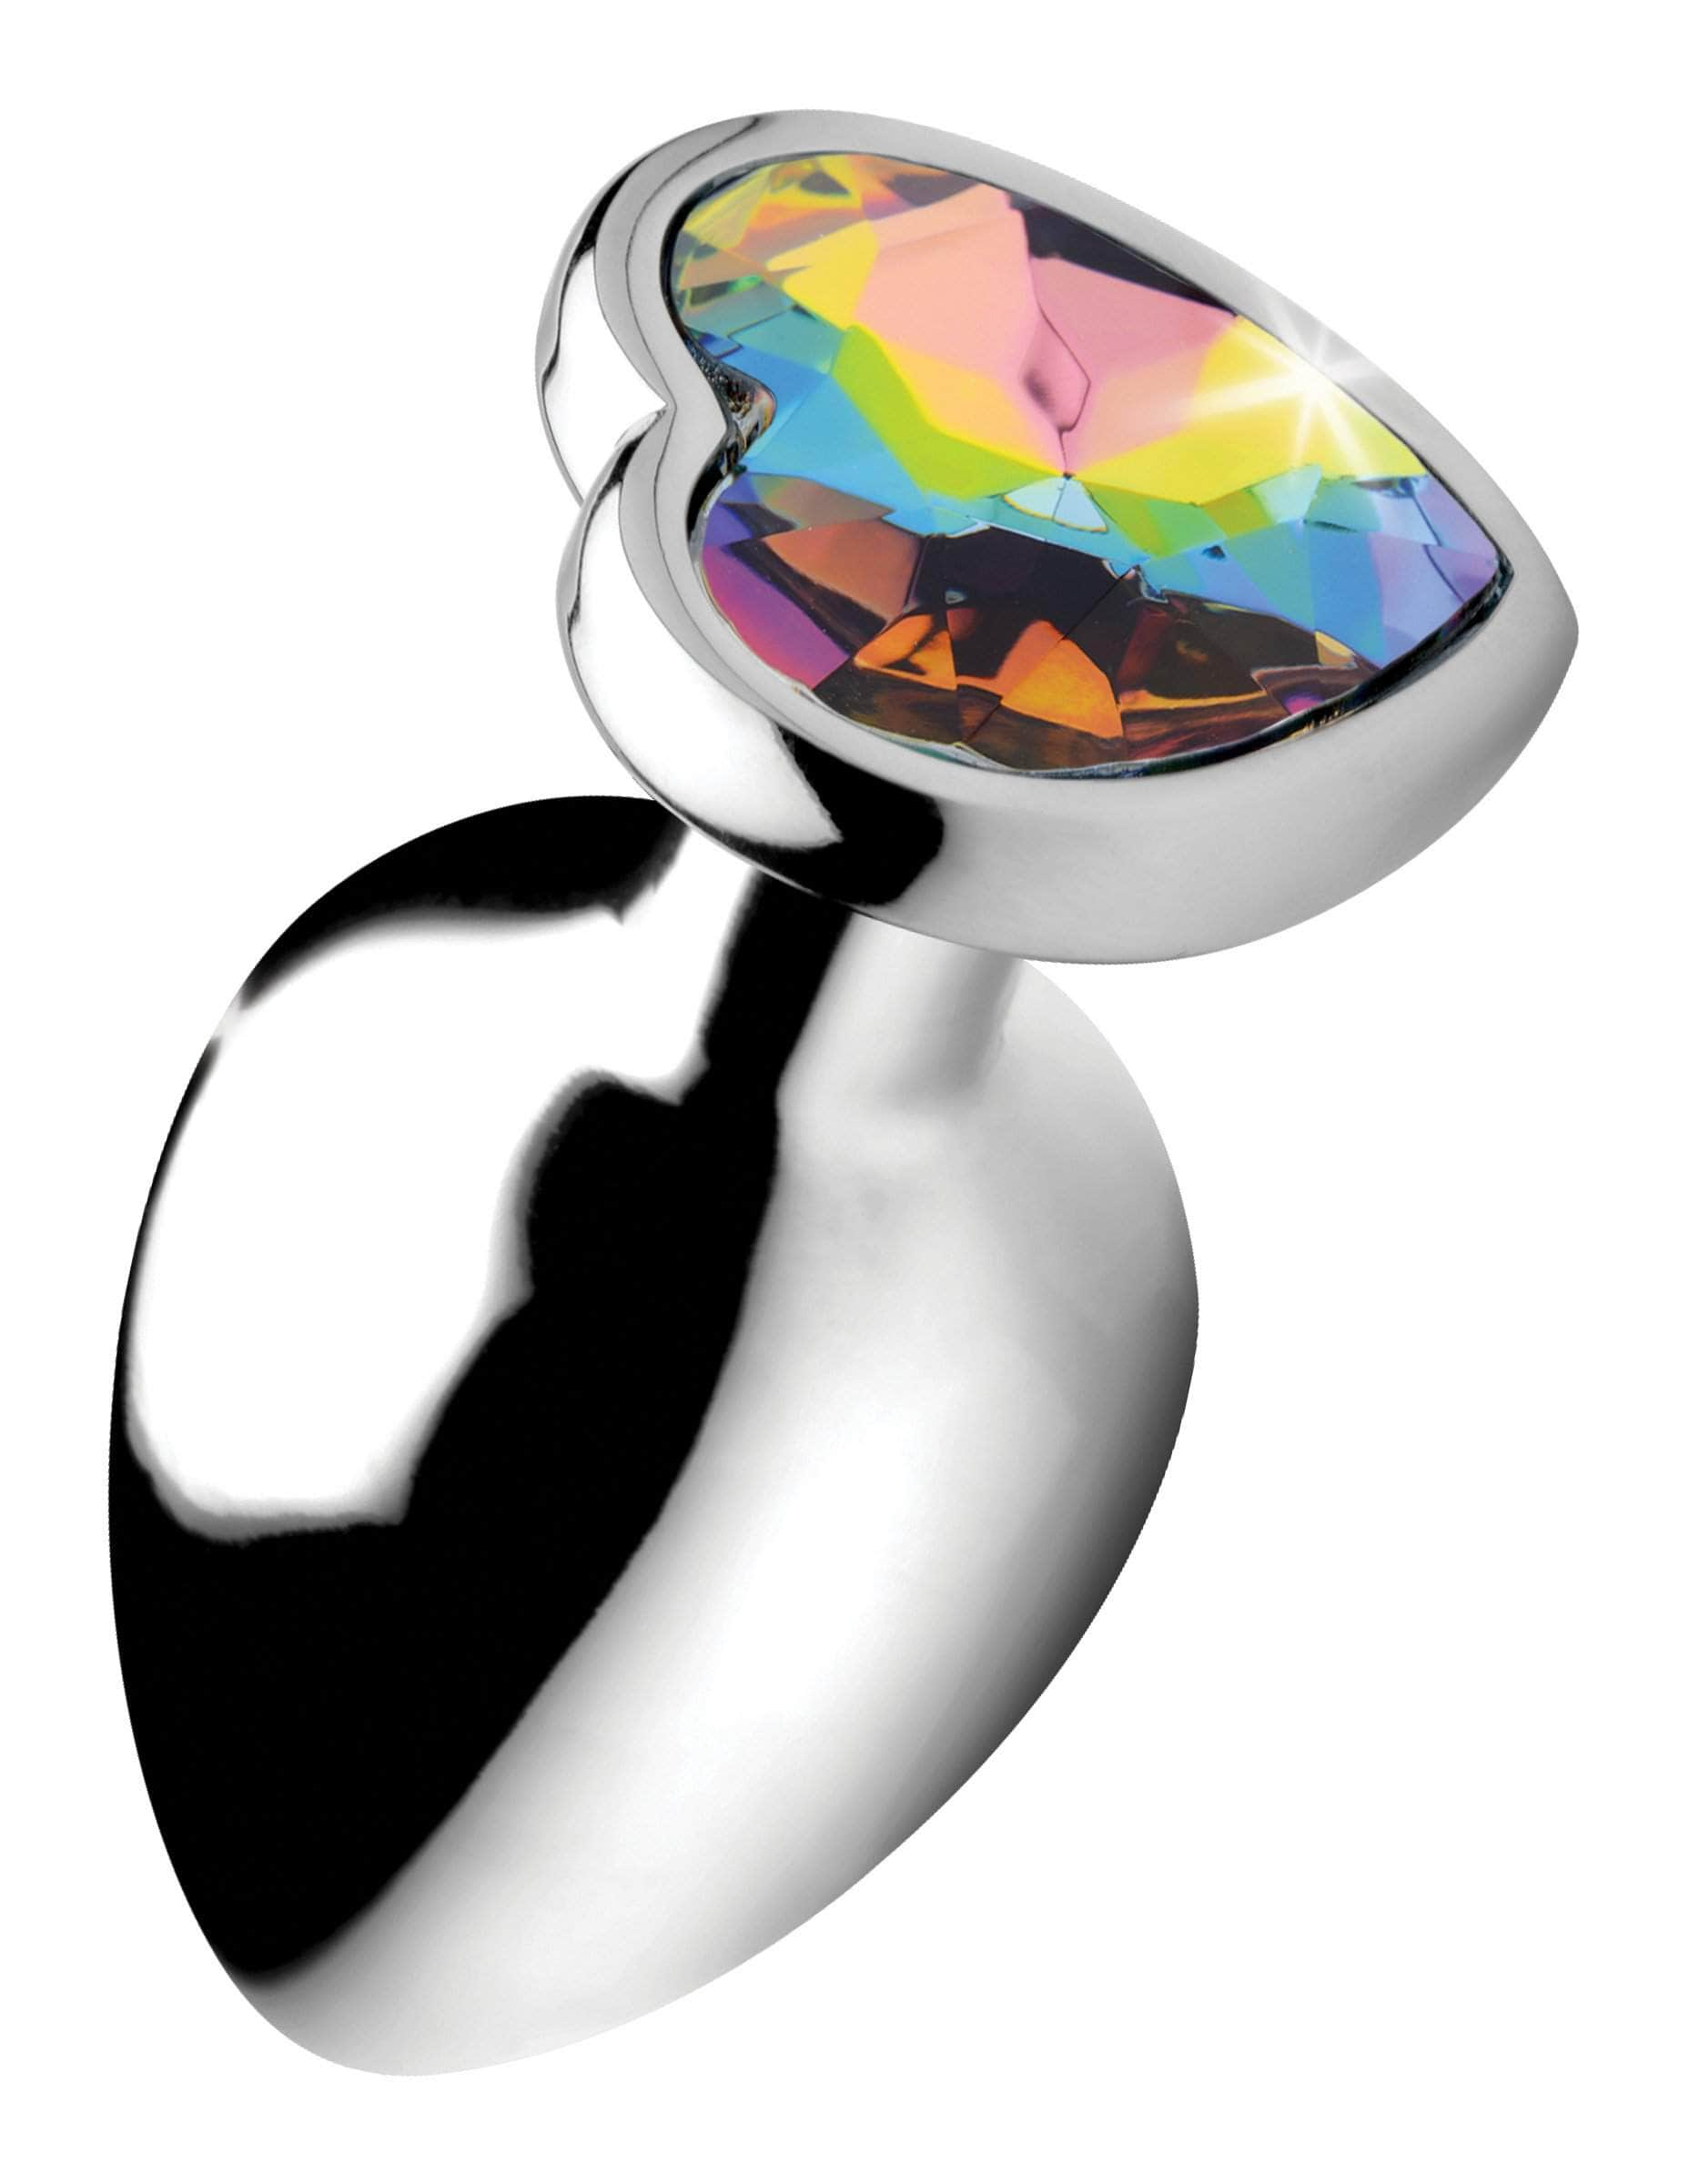 Rainbow Prism Heart Anal Plug - Large